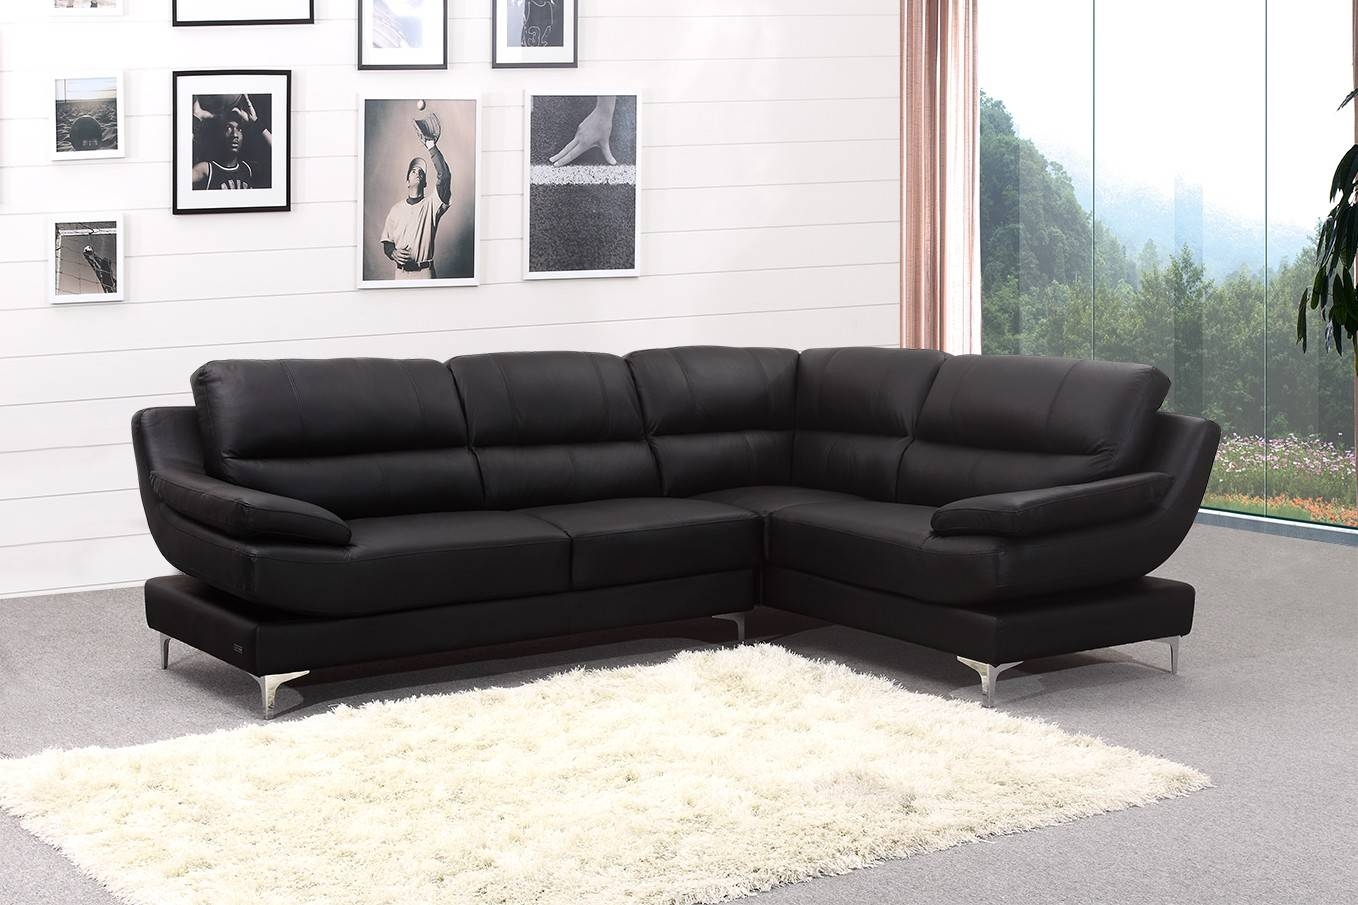 Brilliant Leather Corner Sofa Leather Corner Sofas Groups In A intended for Leather Corner Sofas (Image 5 of 30)